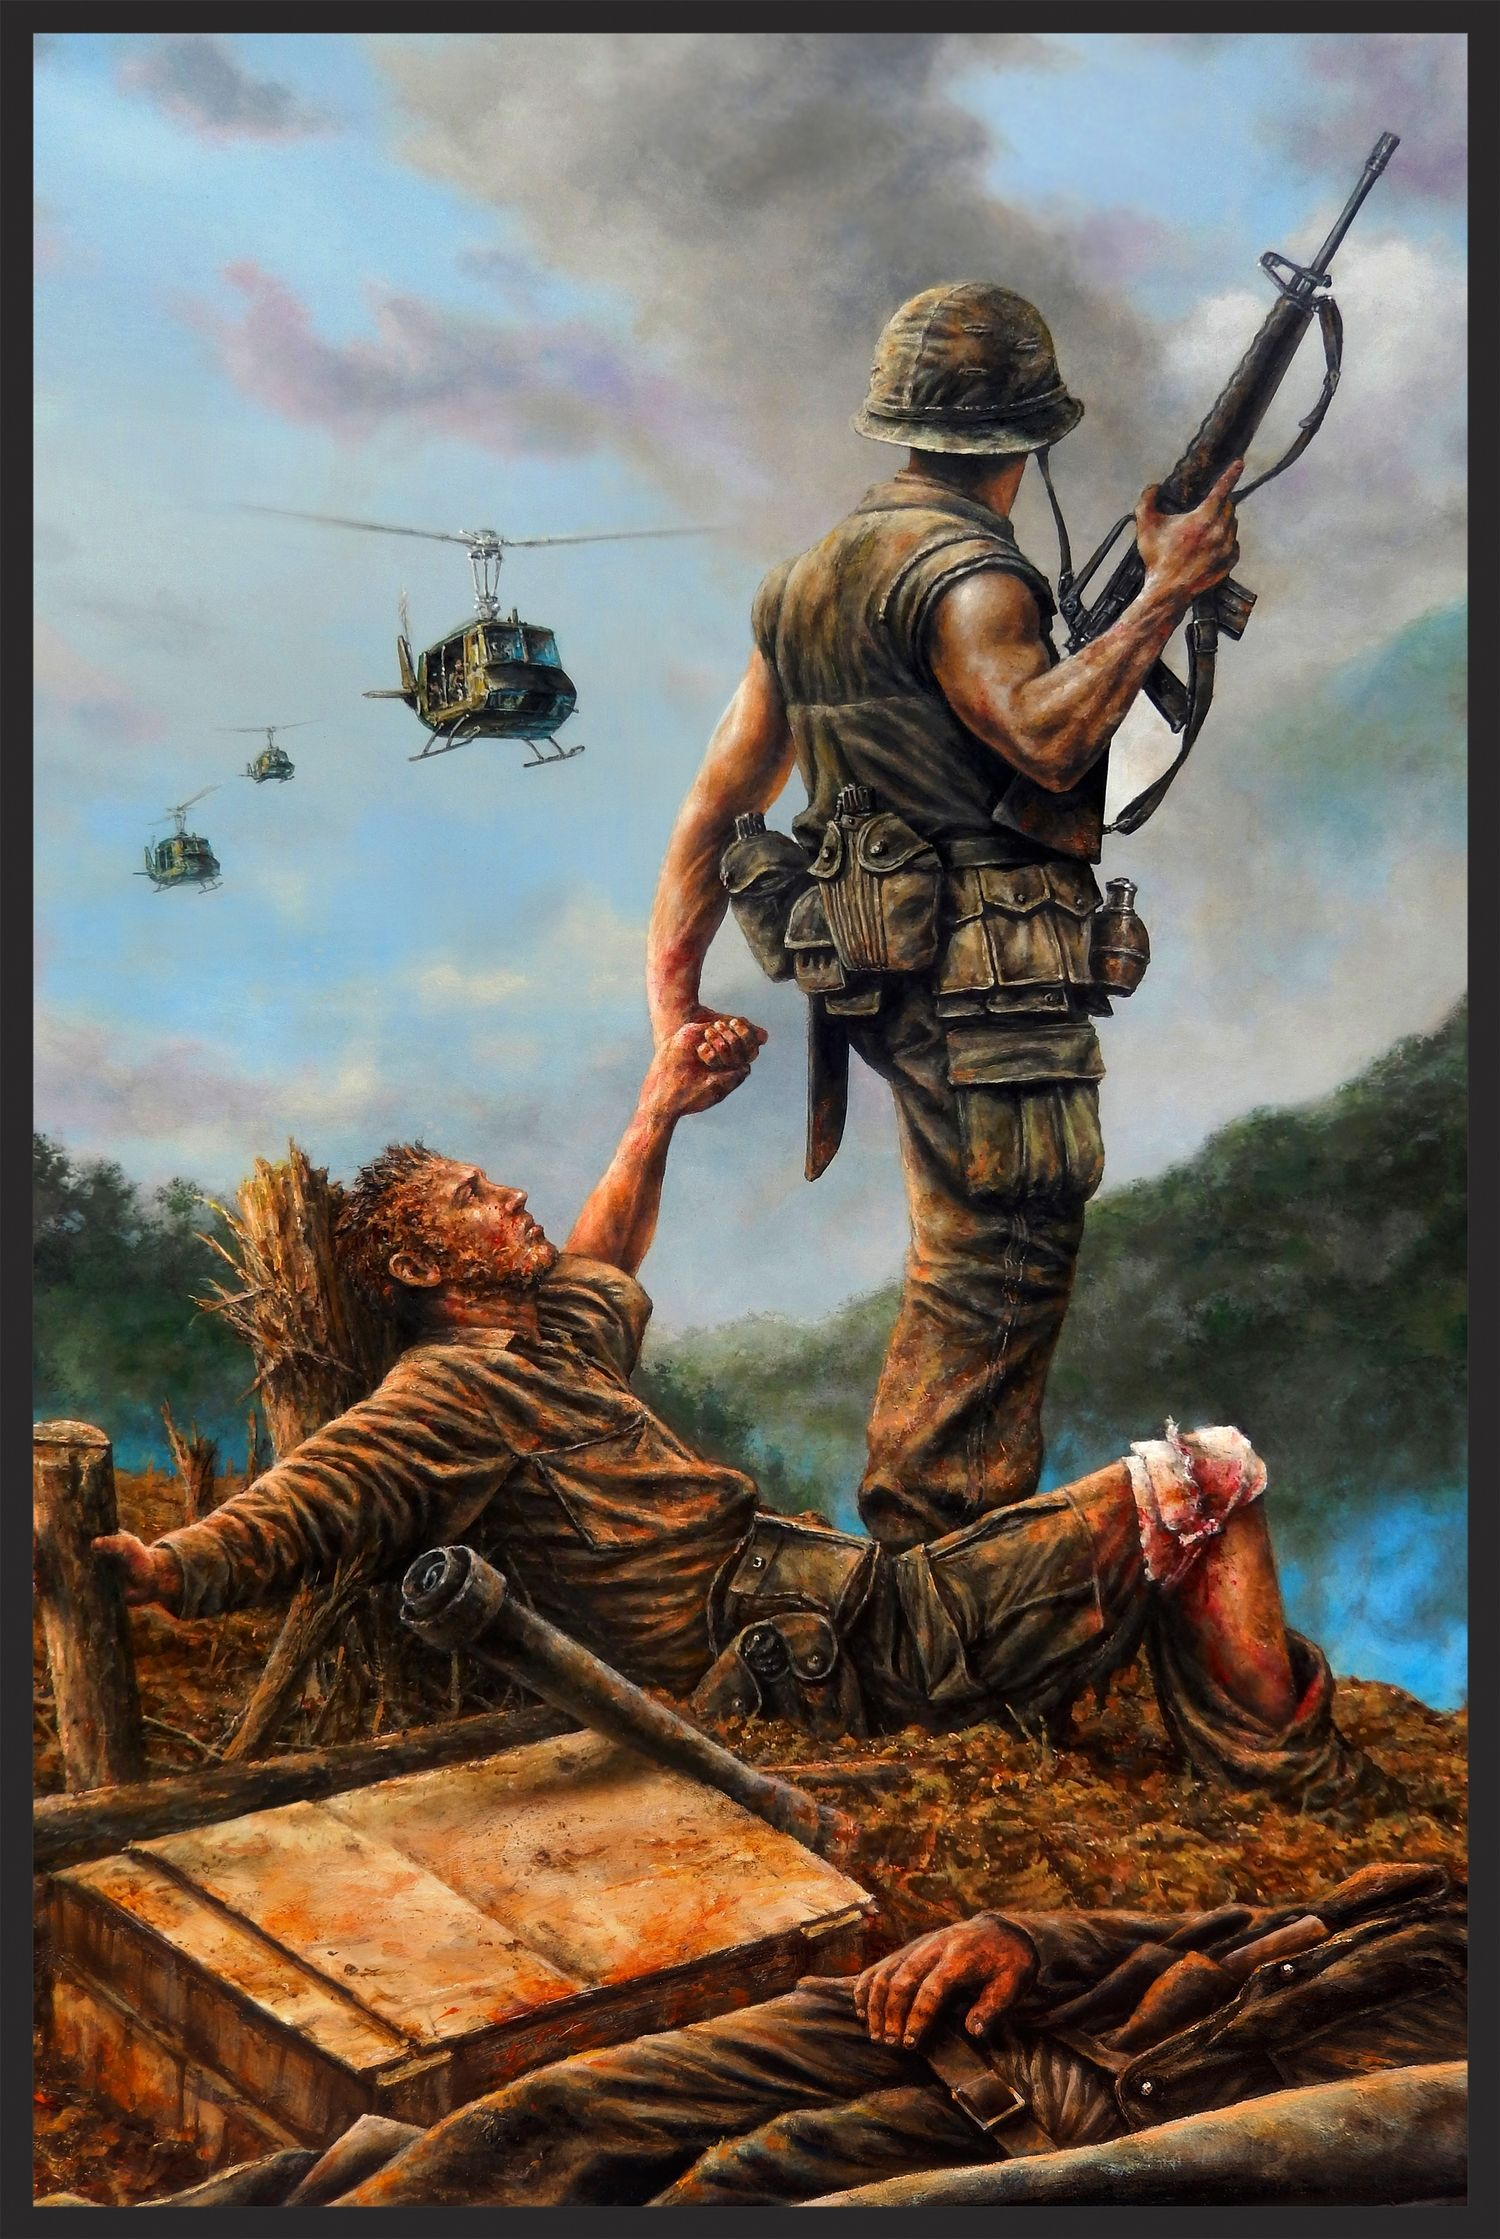 Brothers In Arms Military Drawings Vietnam War Military Artwork